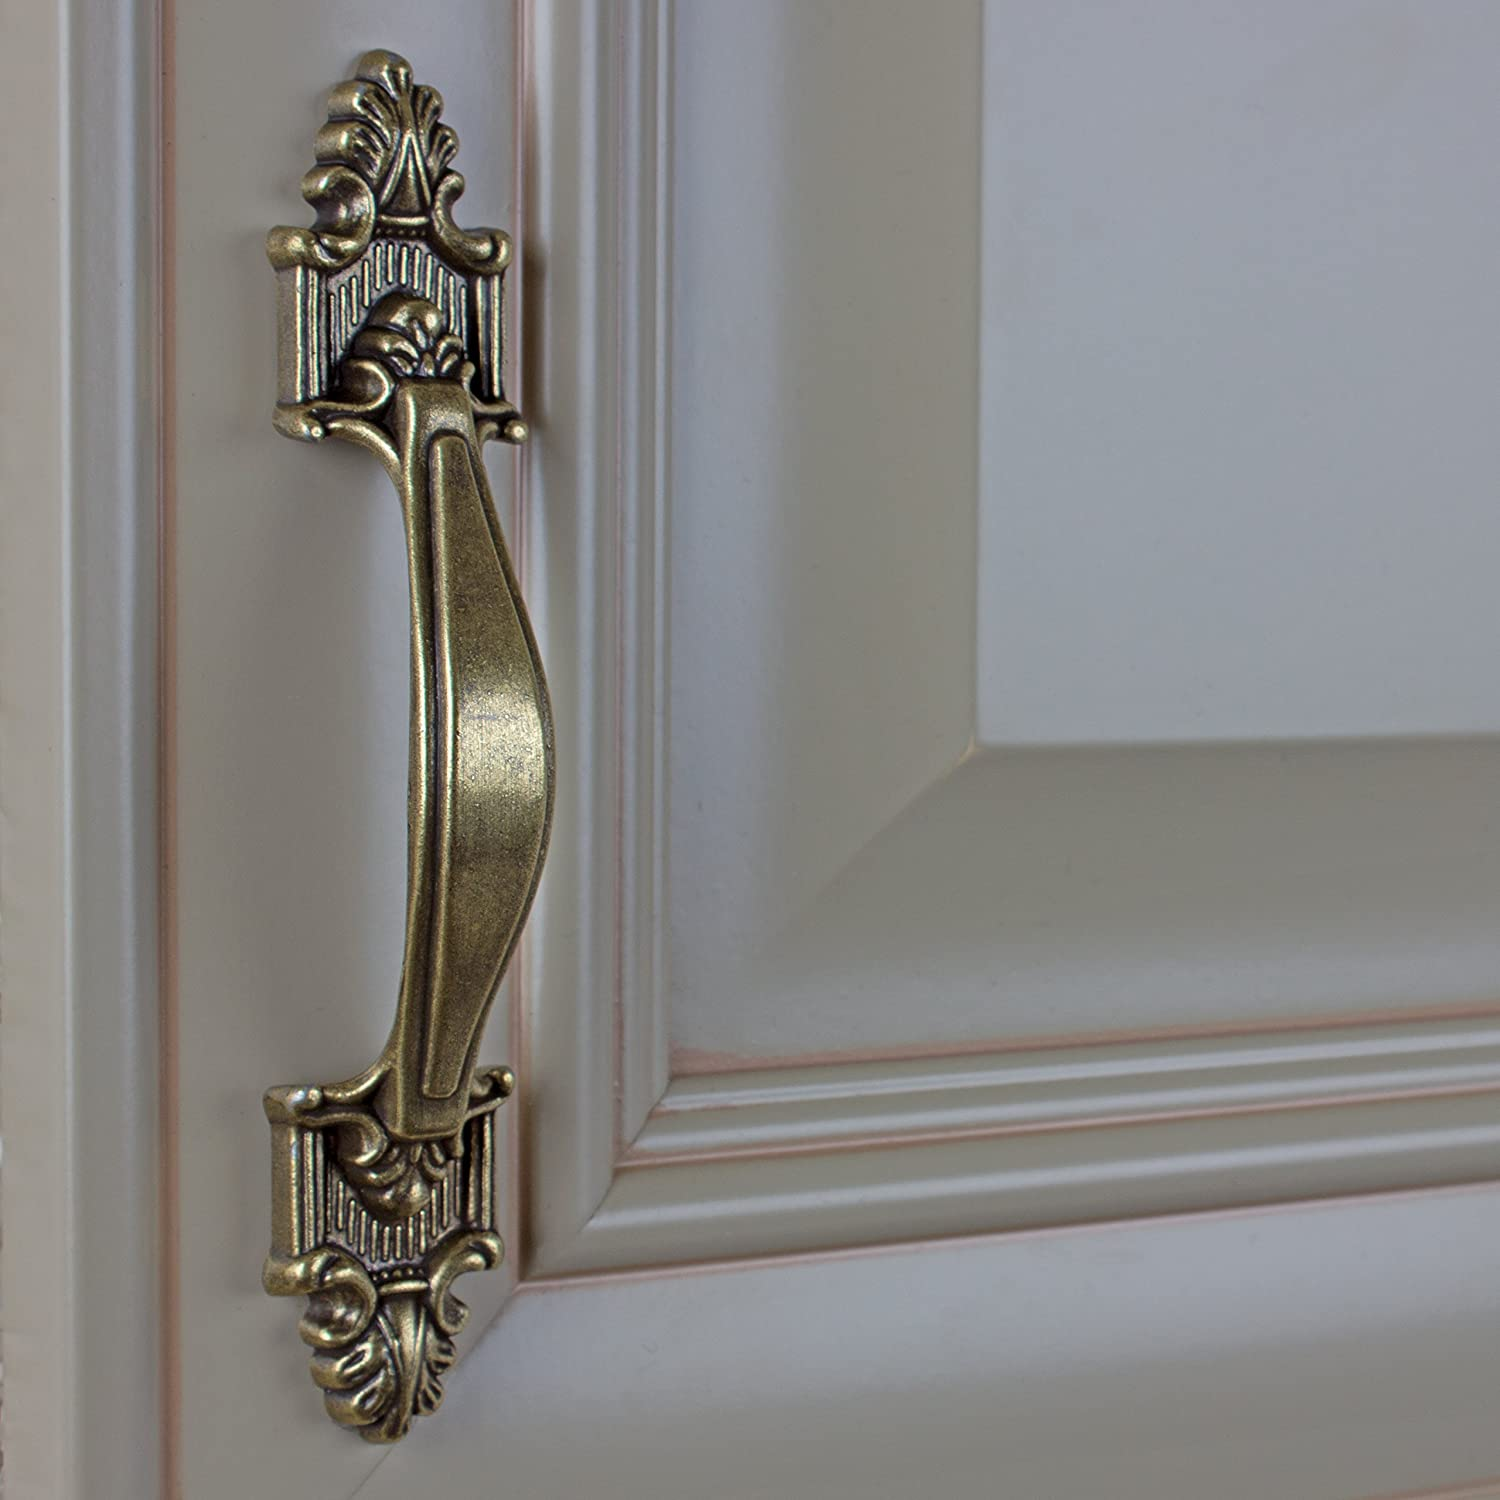 Gliderite Hardware 4116-Ab-25 3.5 Inch Cc Deco Cabinet Pull 25 Pack, Antique Brass Finish